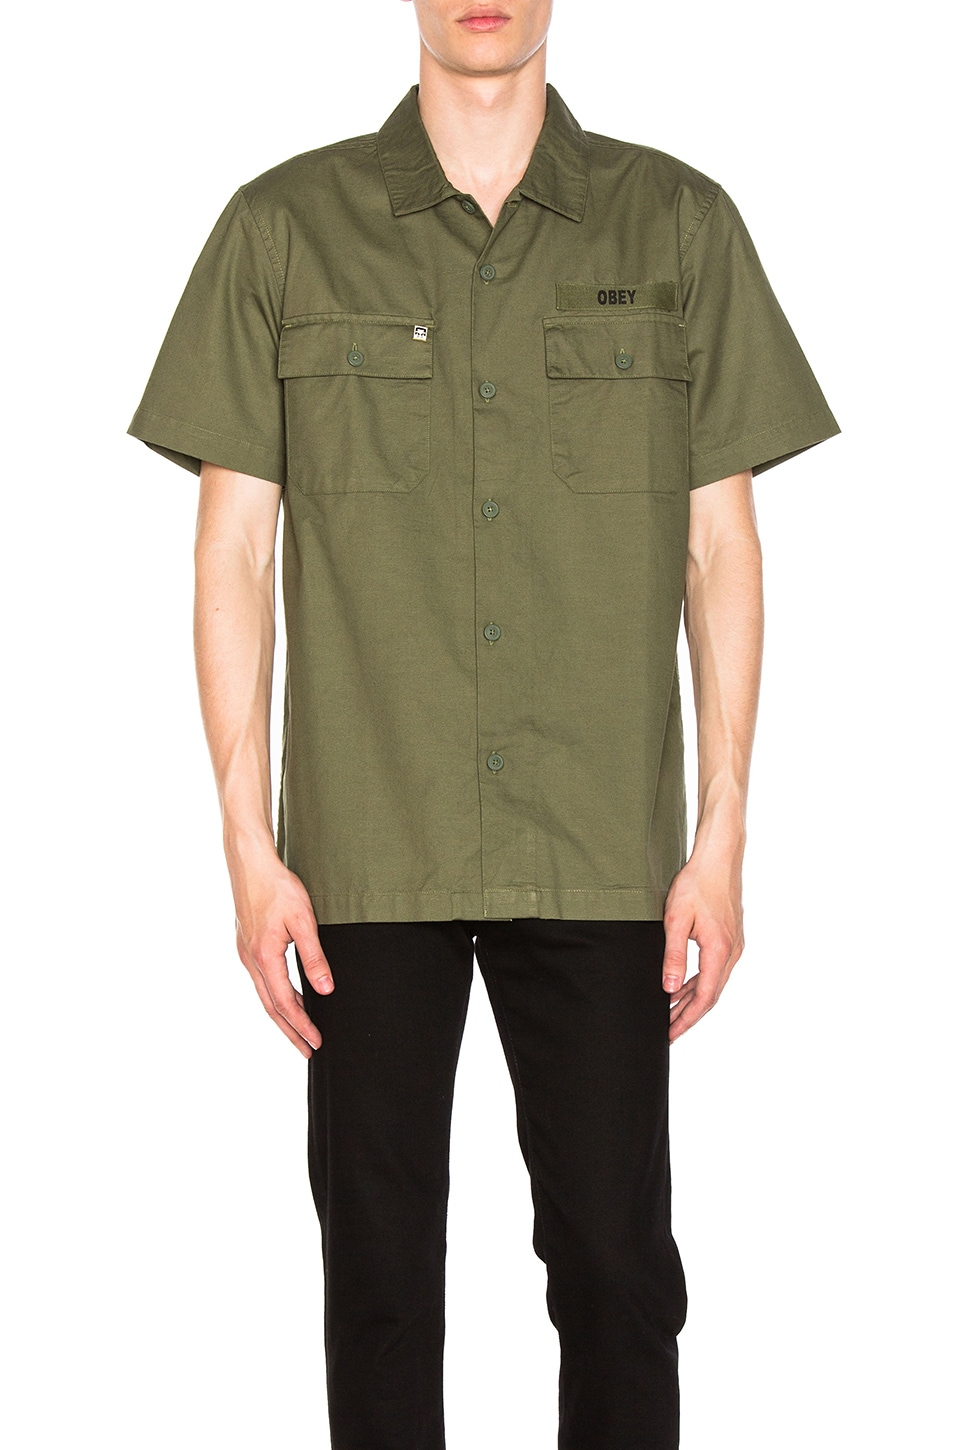 Mission Military Button Down by Obey